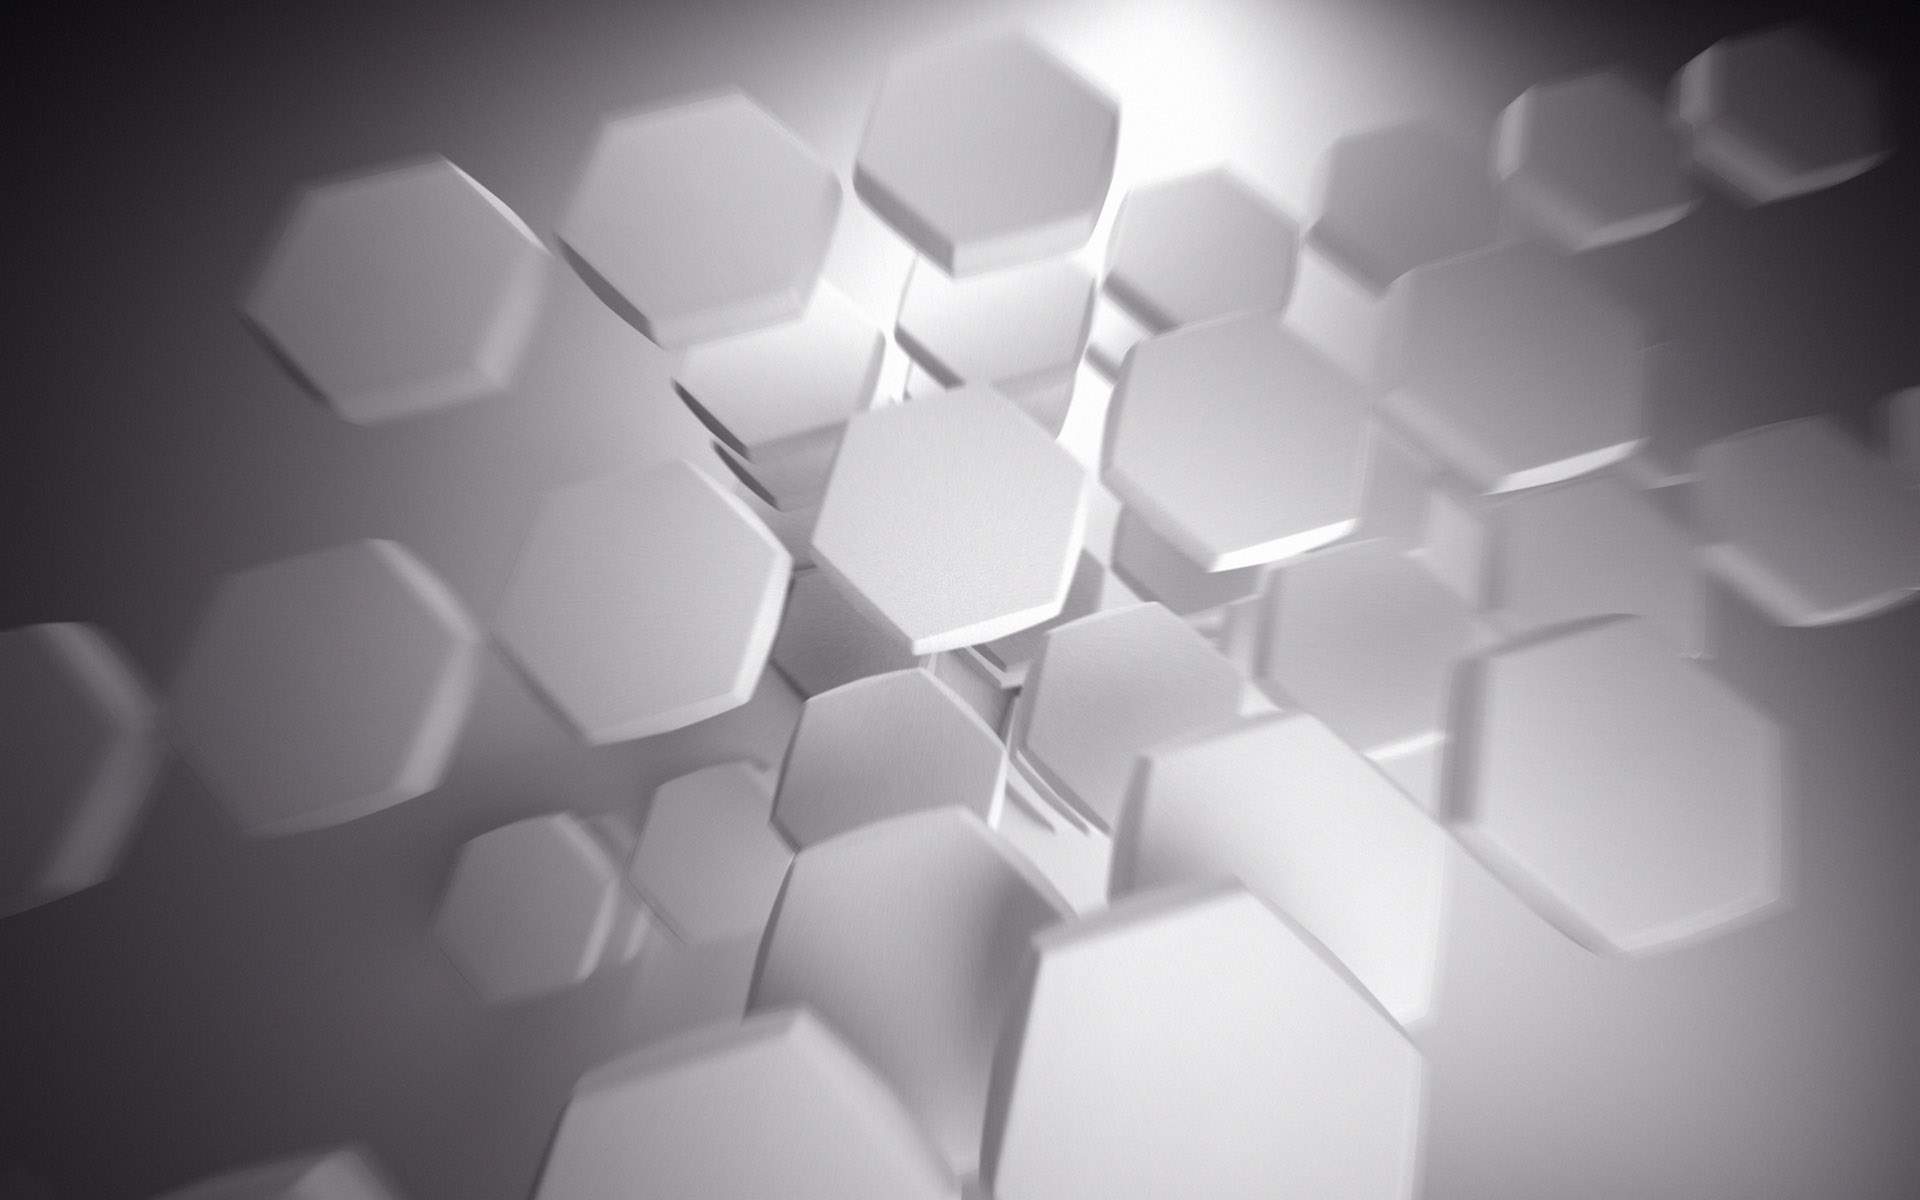 Abstract Background Object Details 768990 Wallpaper wallpaper